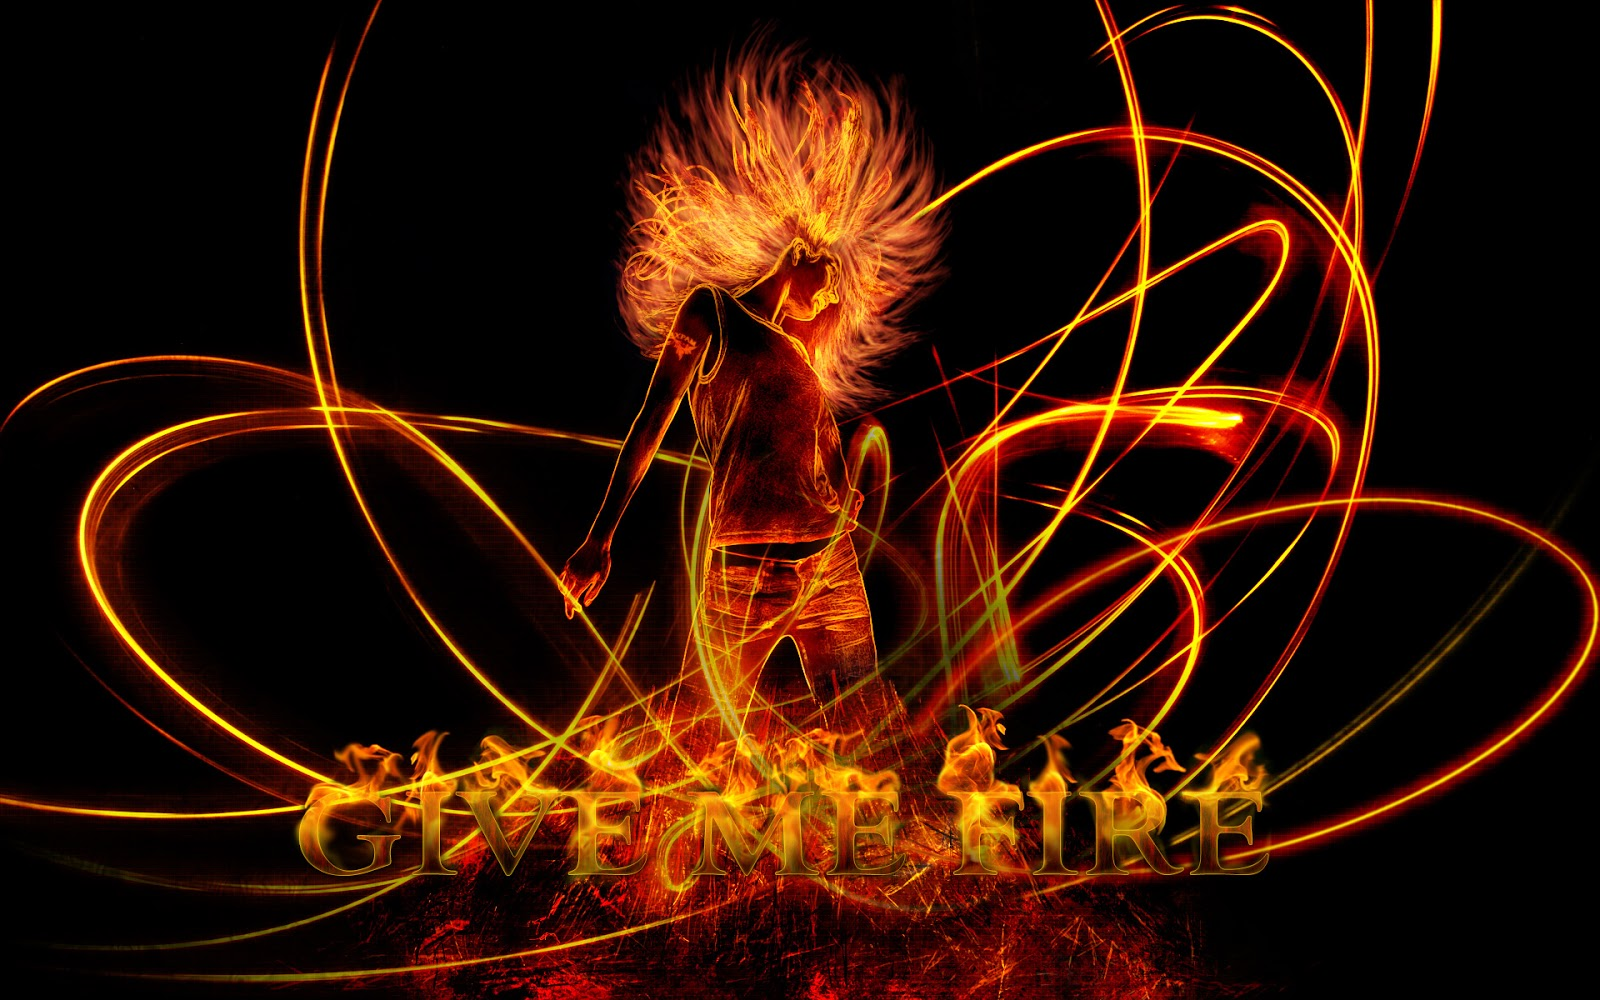 18 <b>Awesome HD Fire Wallpapers</b> - HDWallSource.com